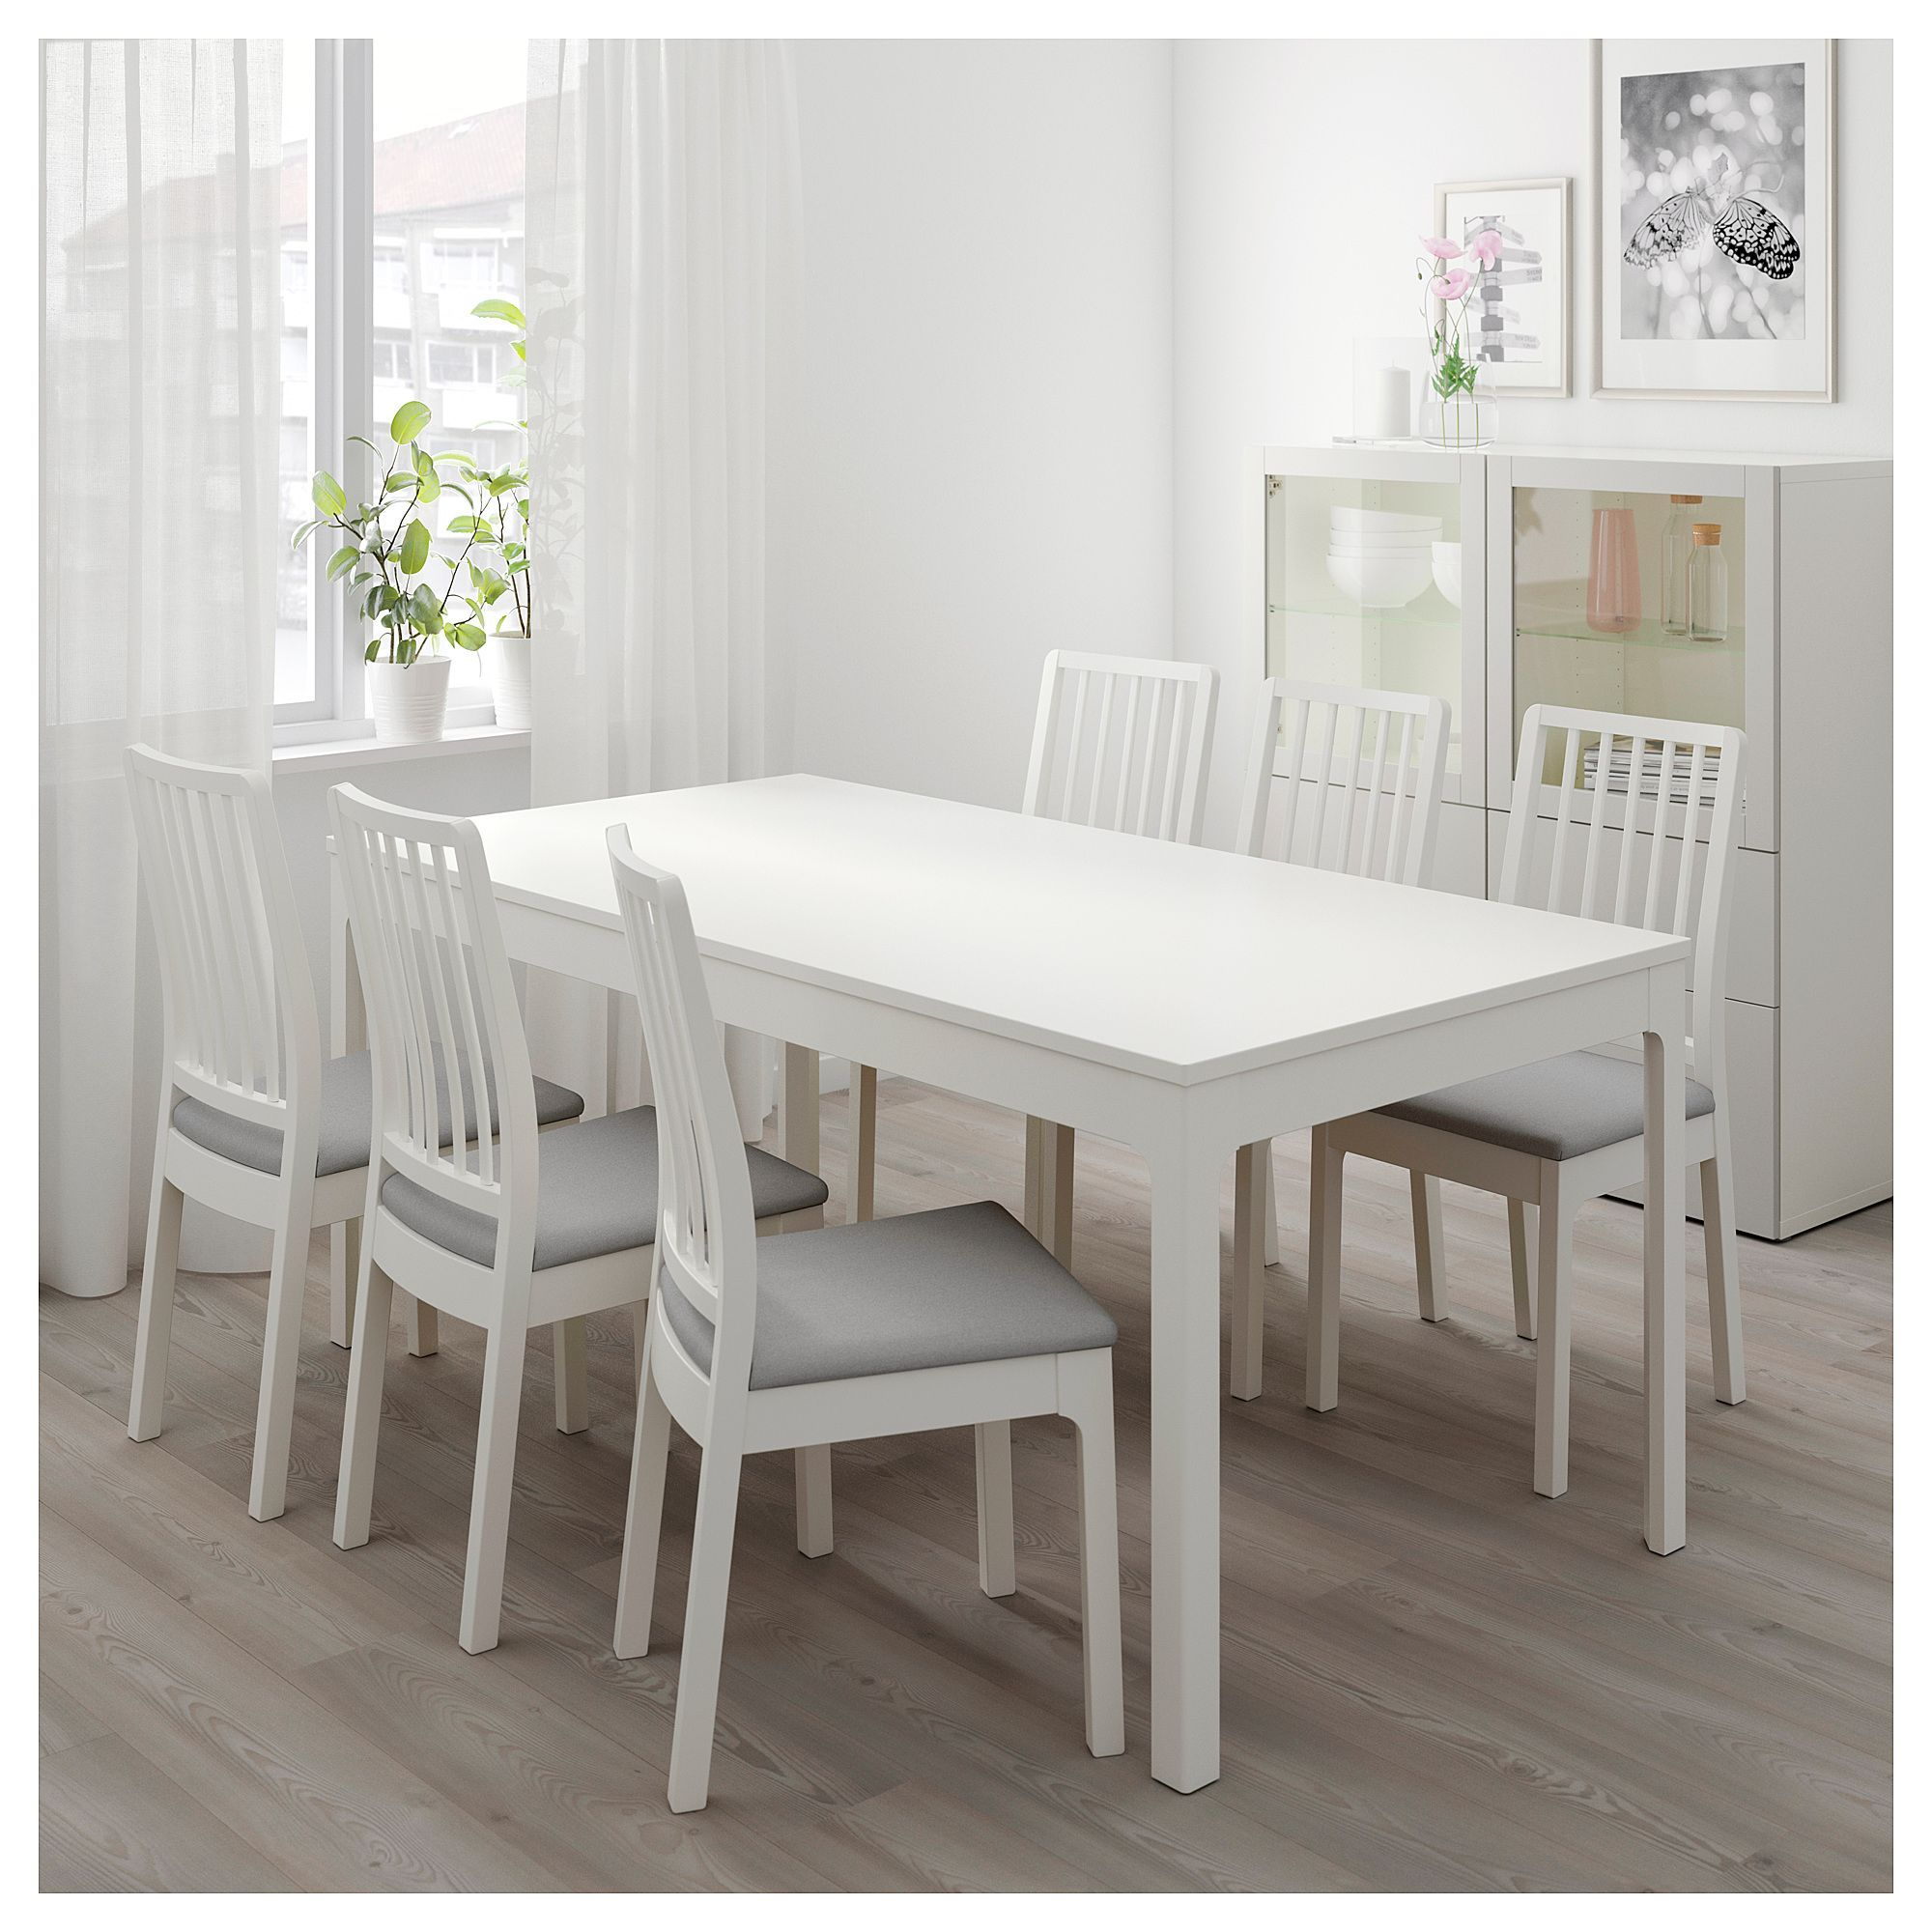 5cfe1fbe228 IKEA - EKEDALEN   Table and 6 chairs white